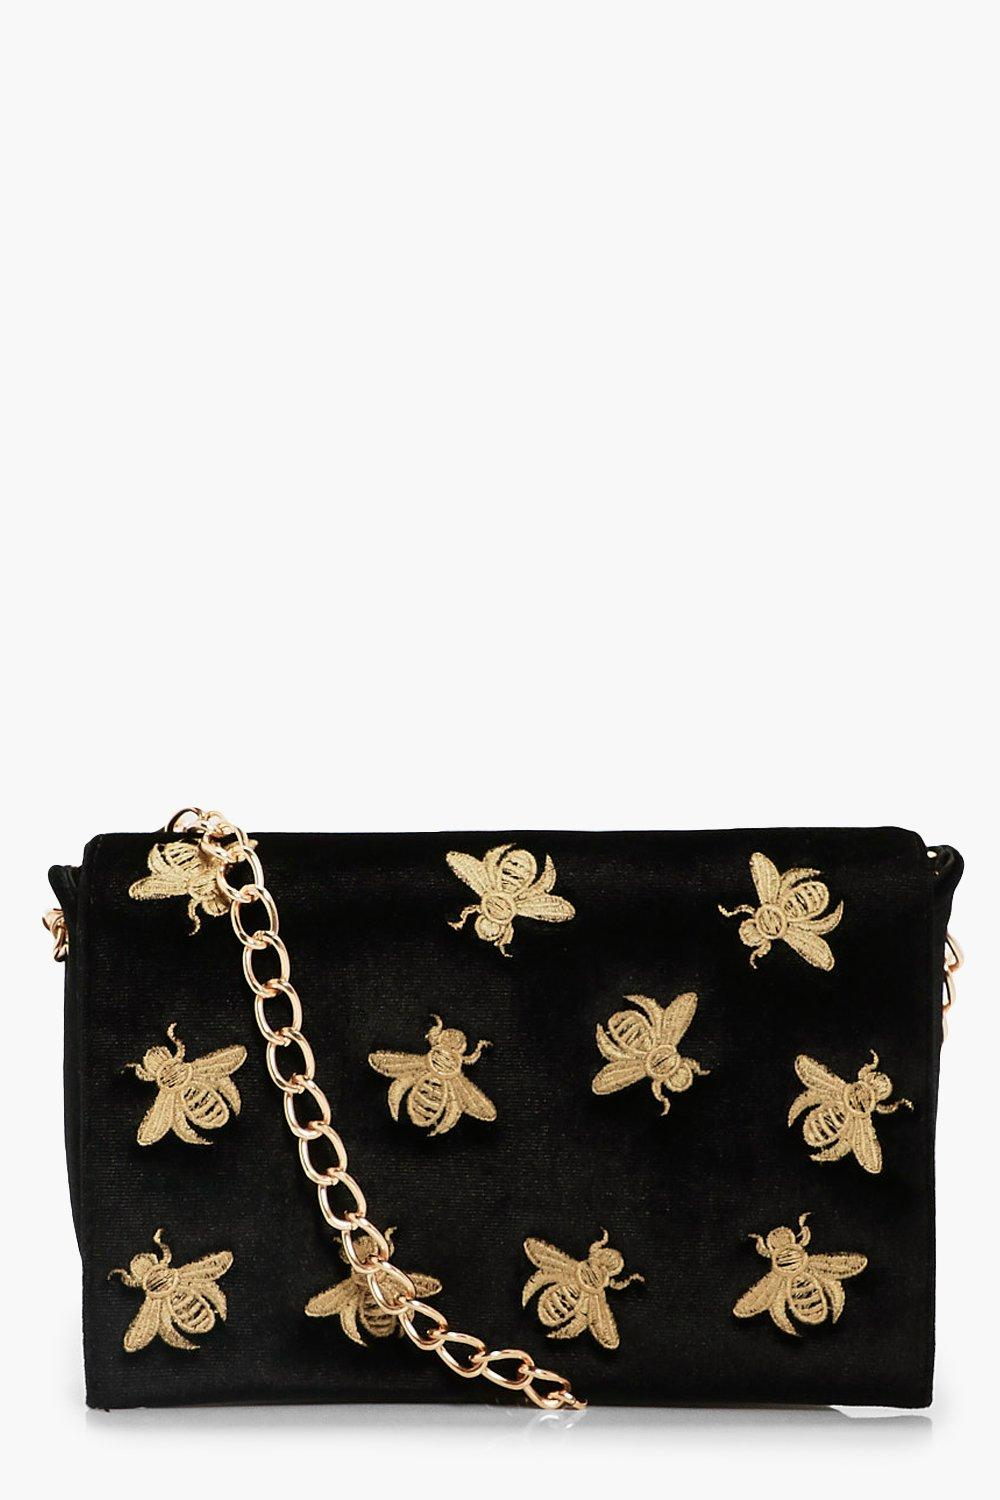 c5c339cc48bb Bug Embroidery Cross Body Bag. Hover to zoom